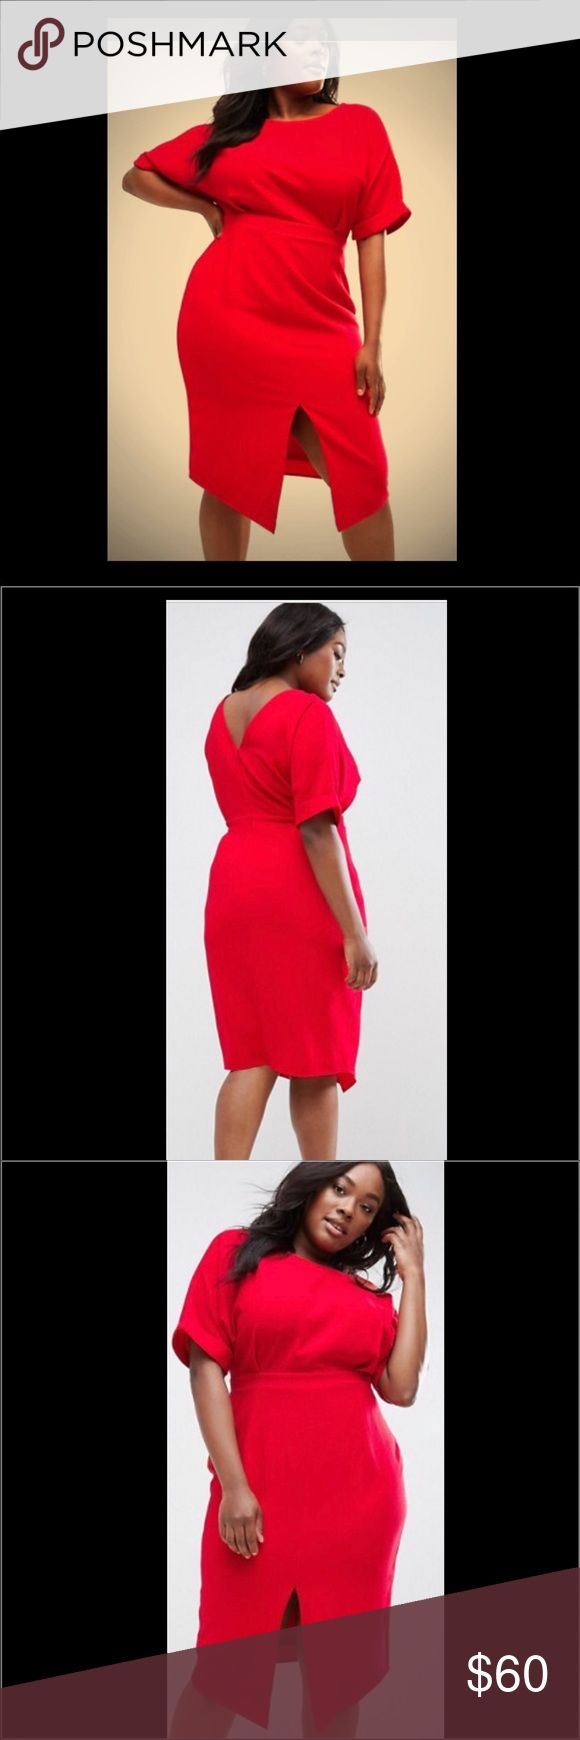 Size 20 ASOS Curve Smart Midi Dress - SHORT SALE Euro company. I thought sizes would run small. They don't. True to size. Great dress. I will repurchase in a size 18. Giving an opportunity for someone to buy before I return. Offer expires 5/27/17. Price is firm. ASOS Curve Dresses Midi